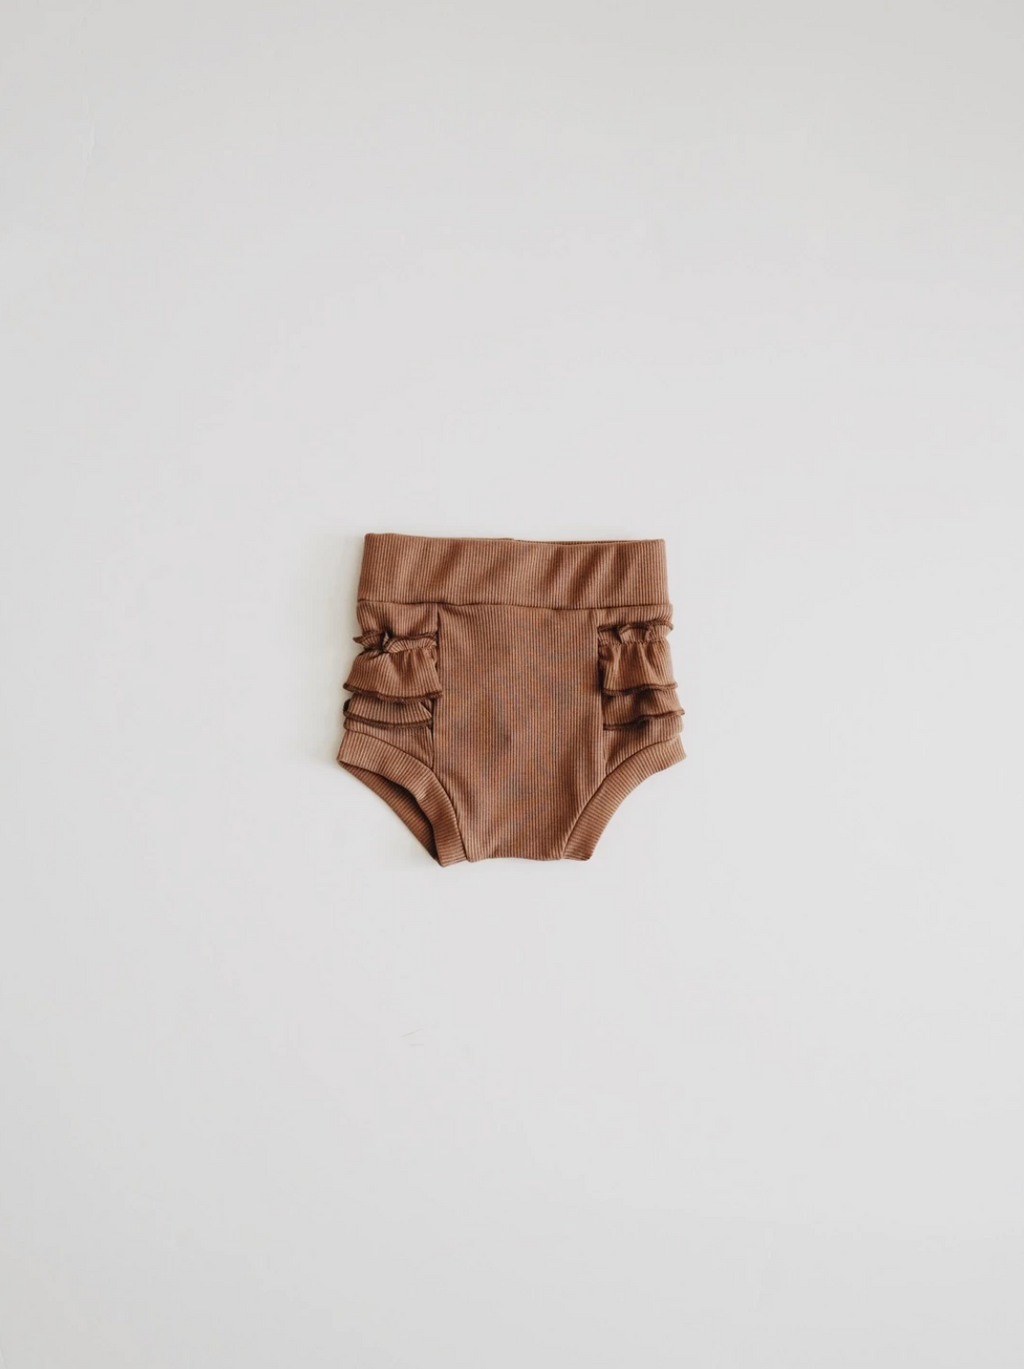 Ribbed Ruffle Bloomer // CHOCOLATE